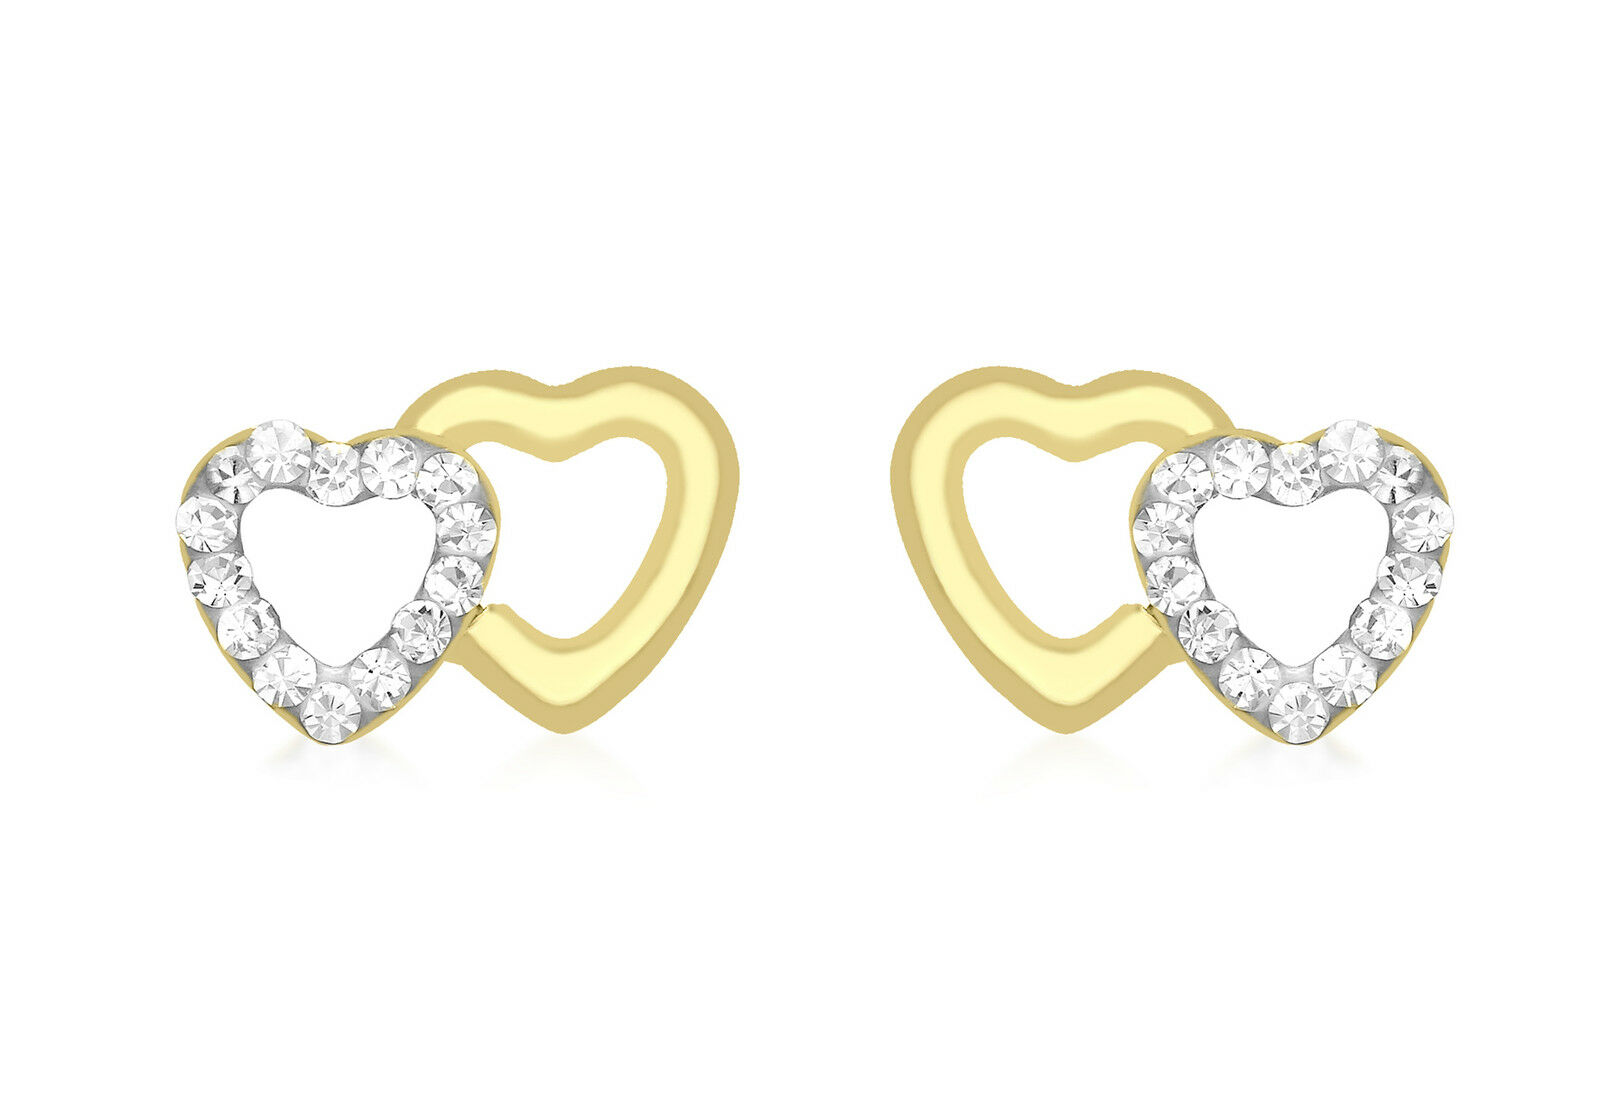 9ct Yellow gold Double Heart Plain CZ Stud Earrings Jewellery With Gift Box